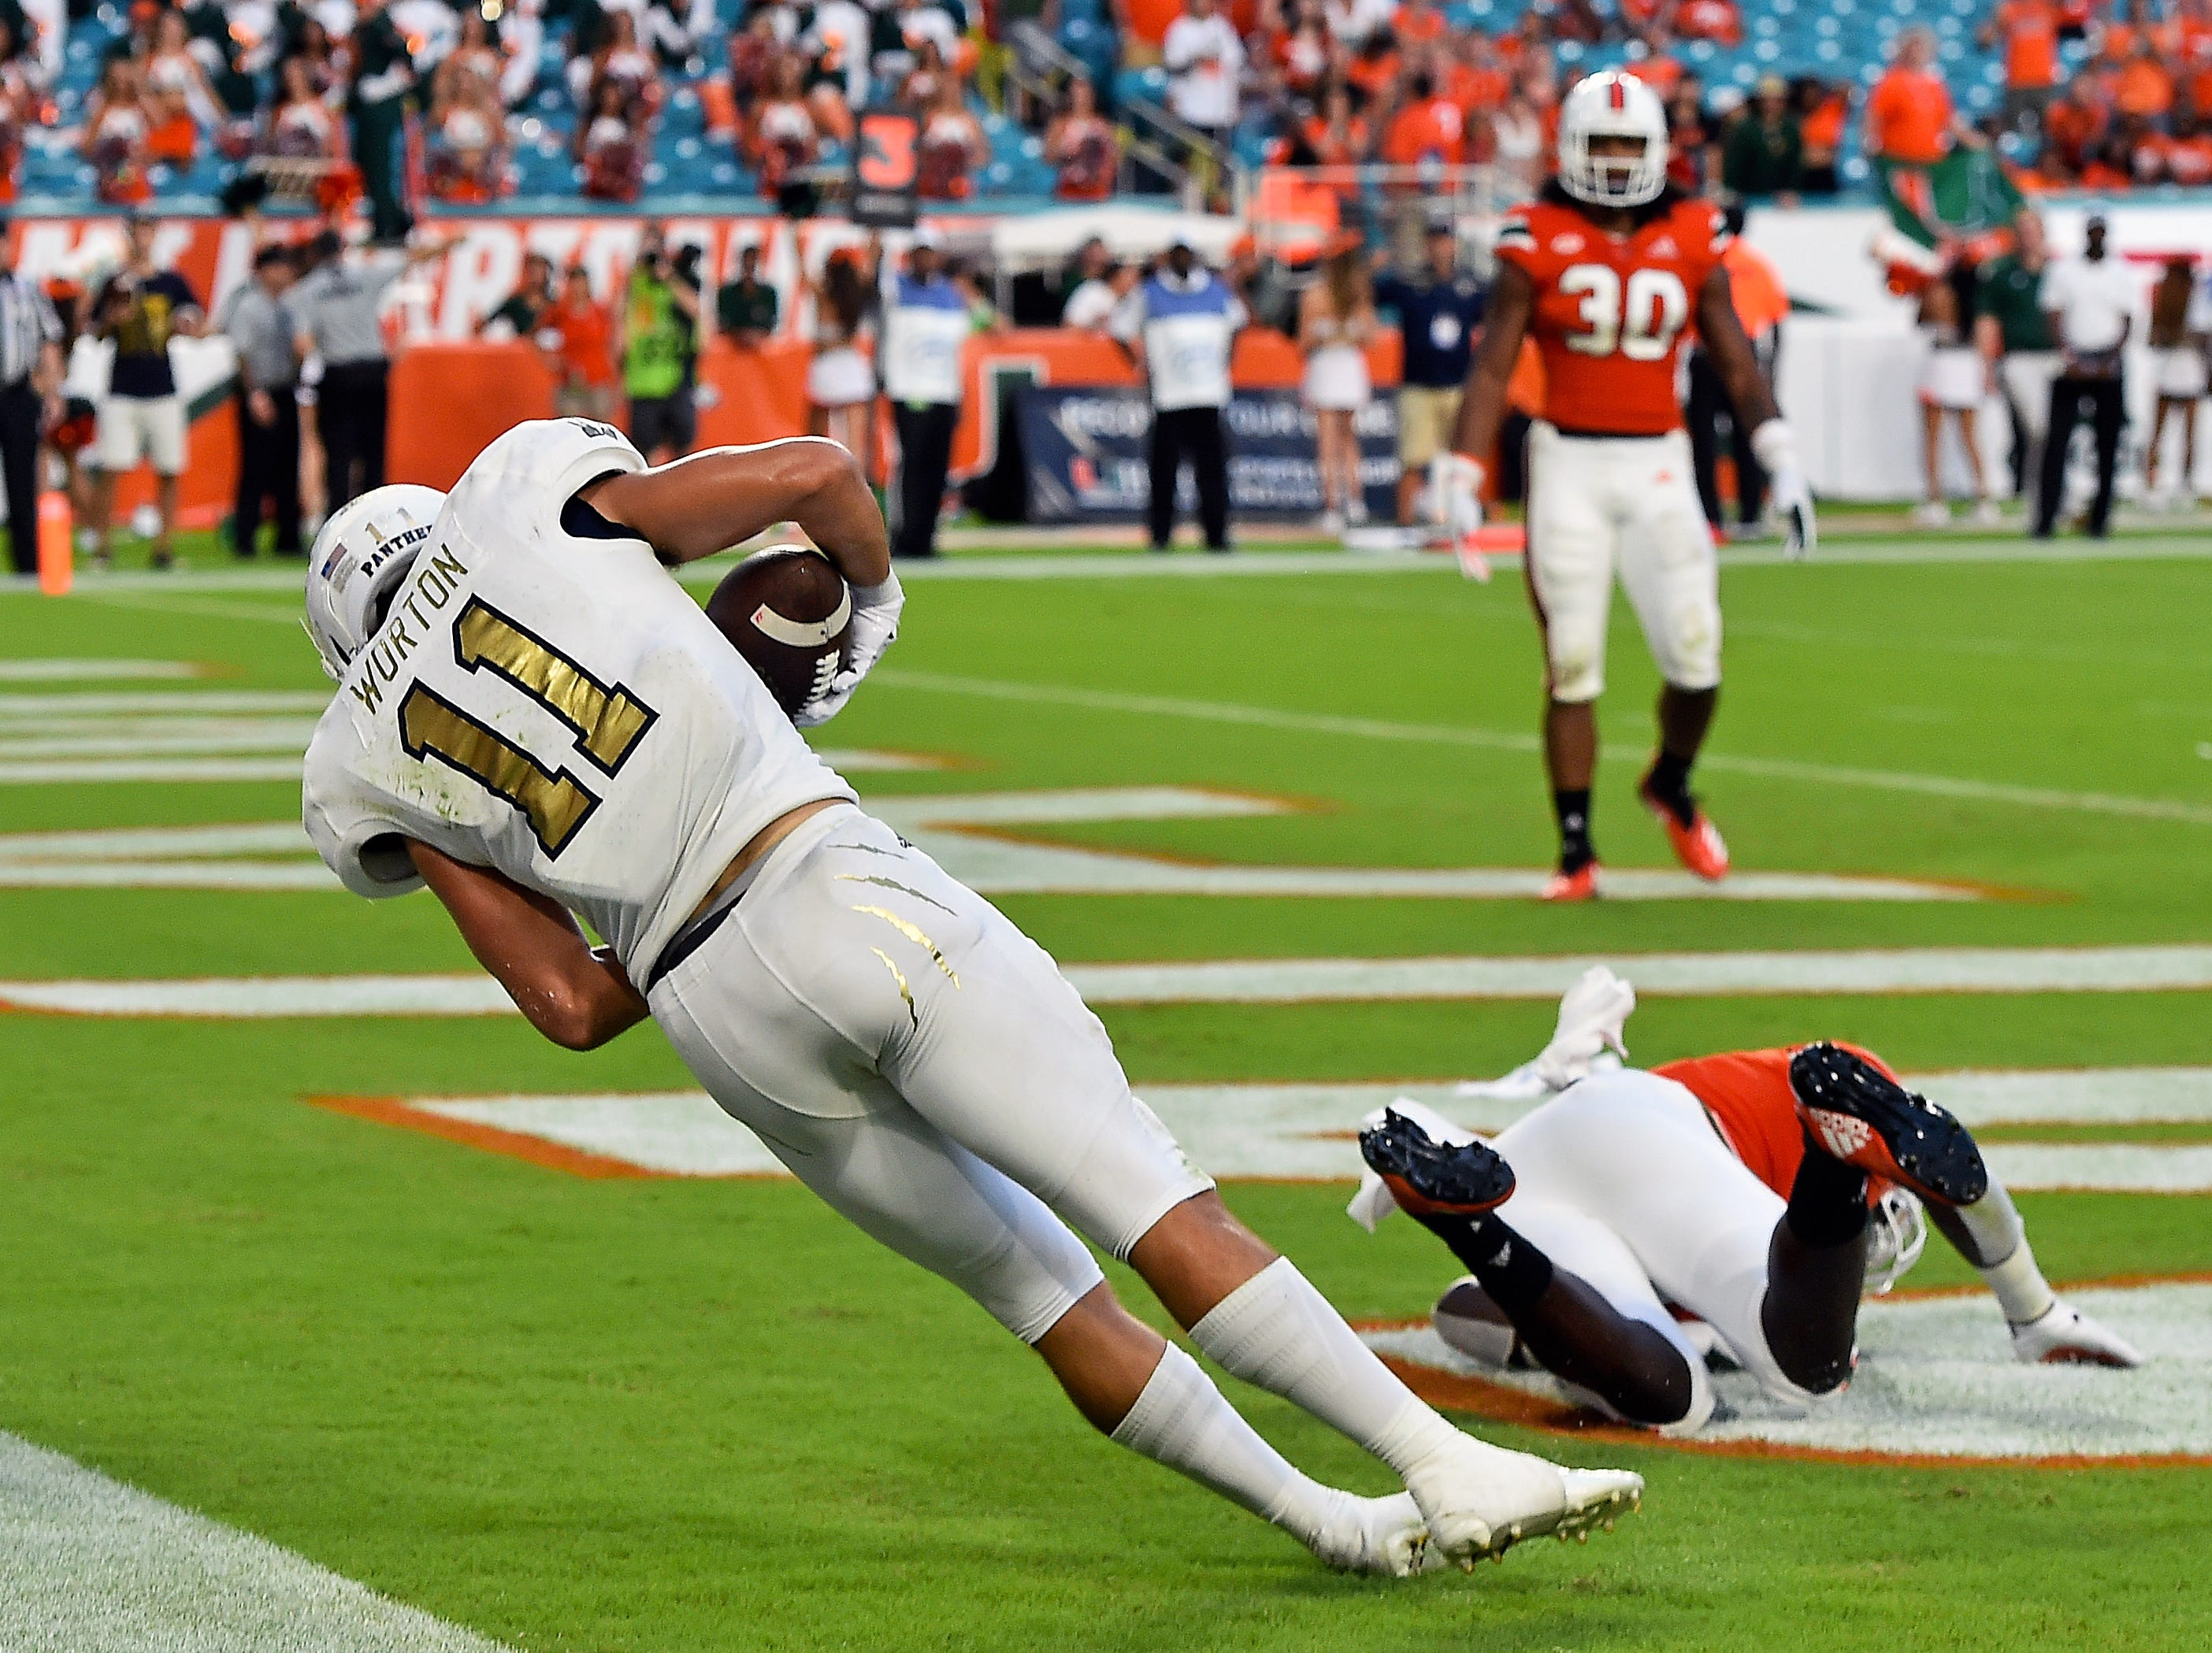 FIU Golden Panthers wide receiver CJ Worton (11) stays in bounds to score a touchdown against the Miami Hurricanes during the second half at Hard Rock Stadium.